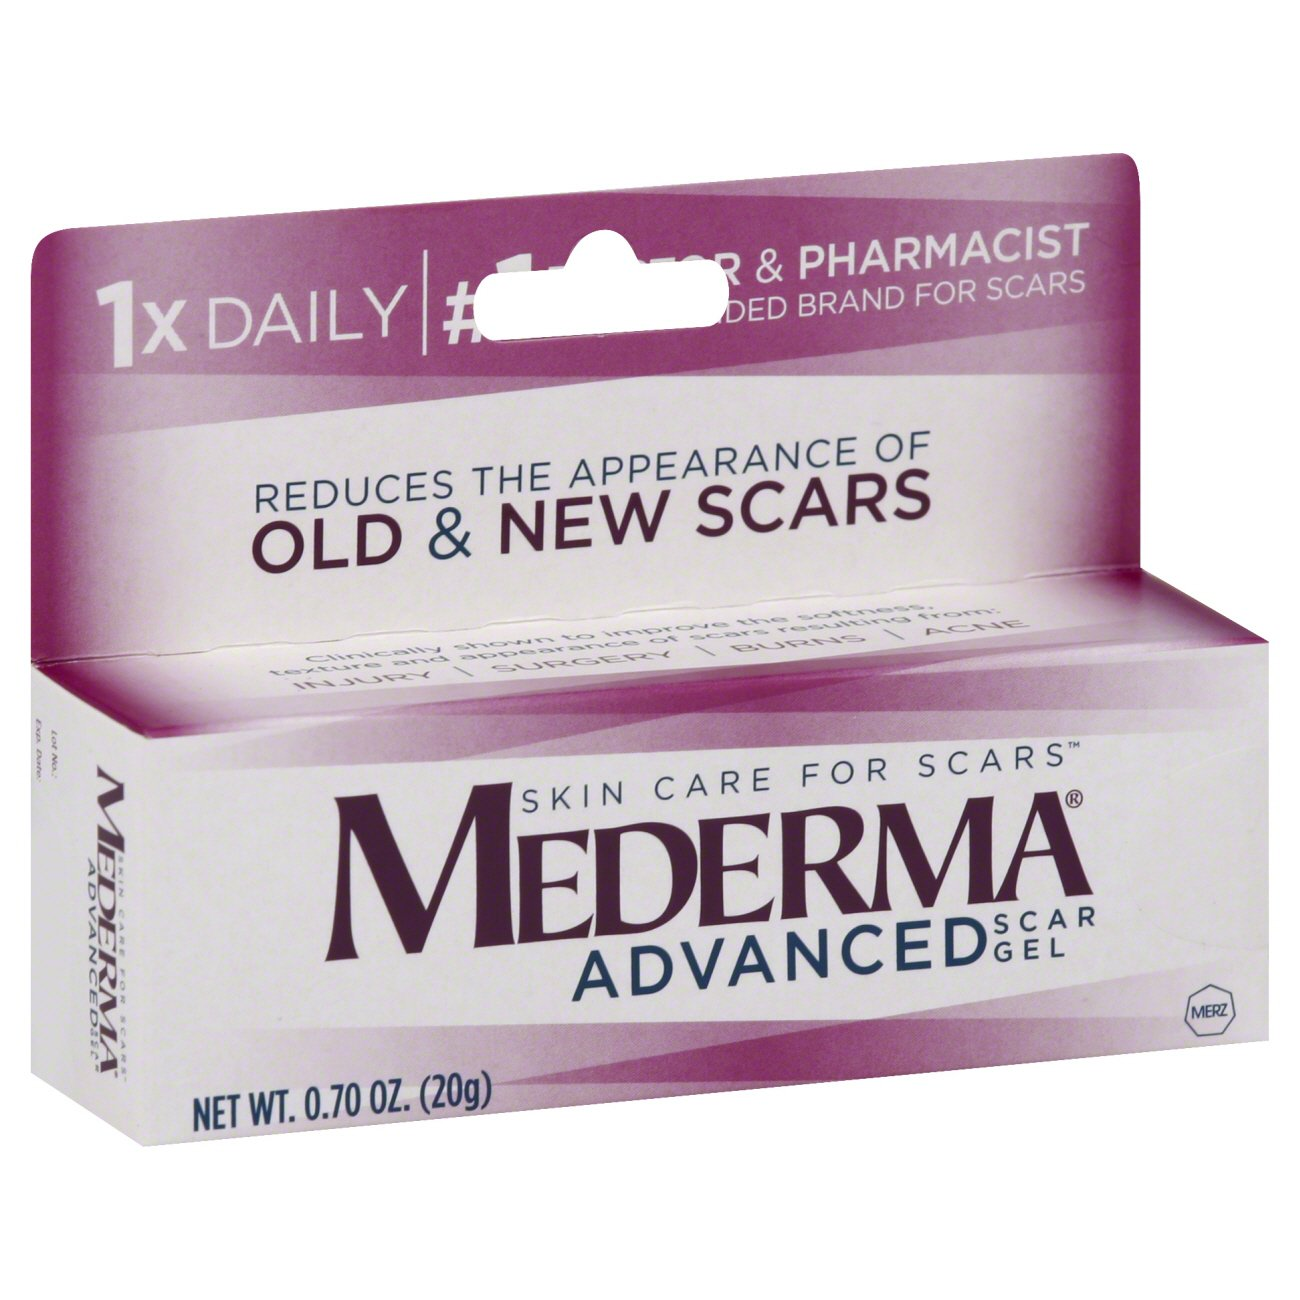 Mederma Advanced Scar Gel Shop Facial Masks Treatments At H E B